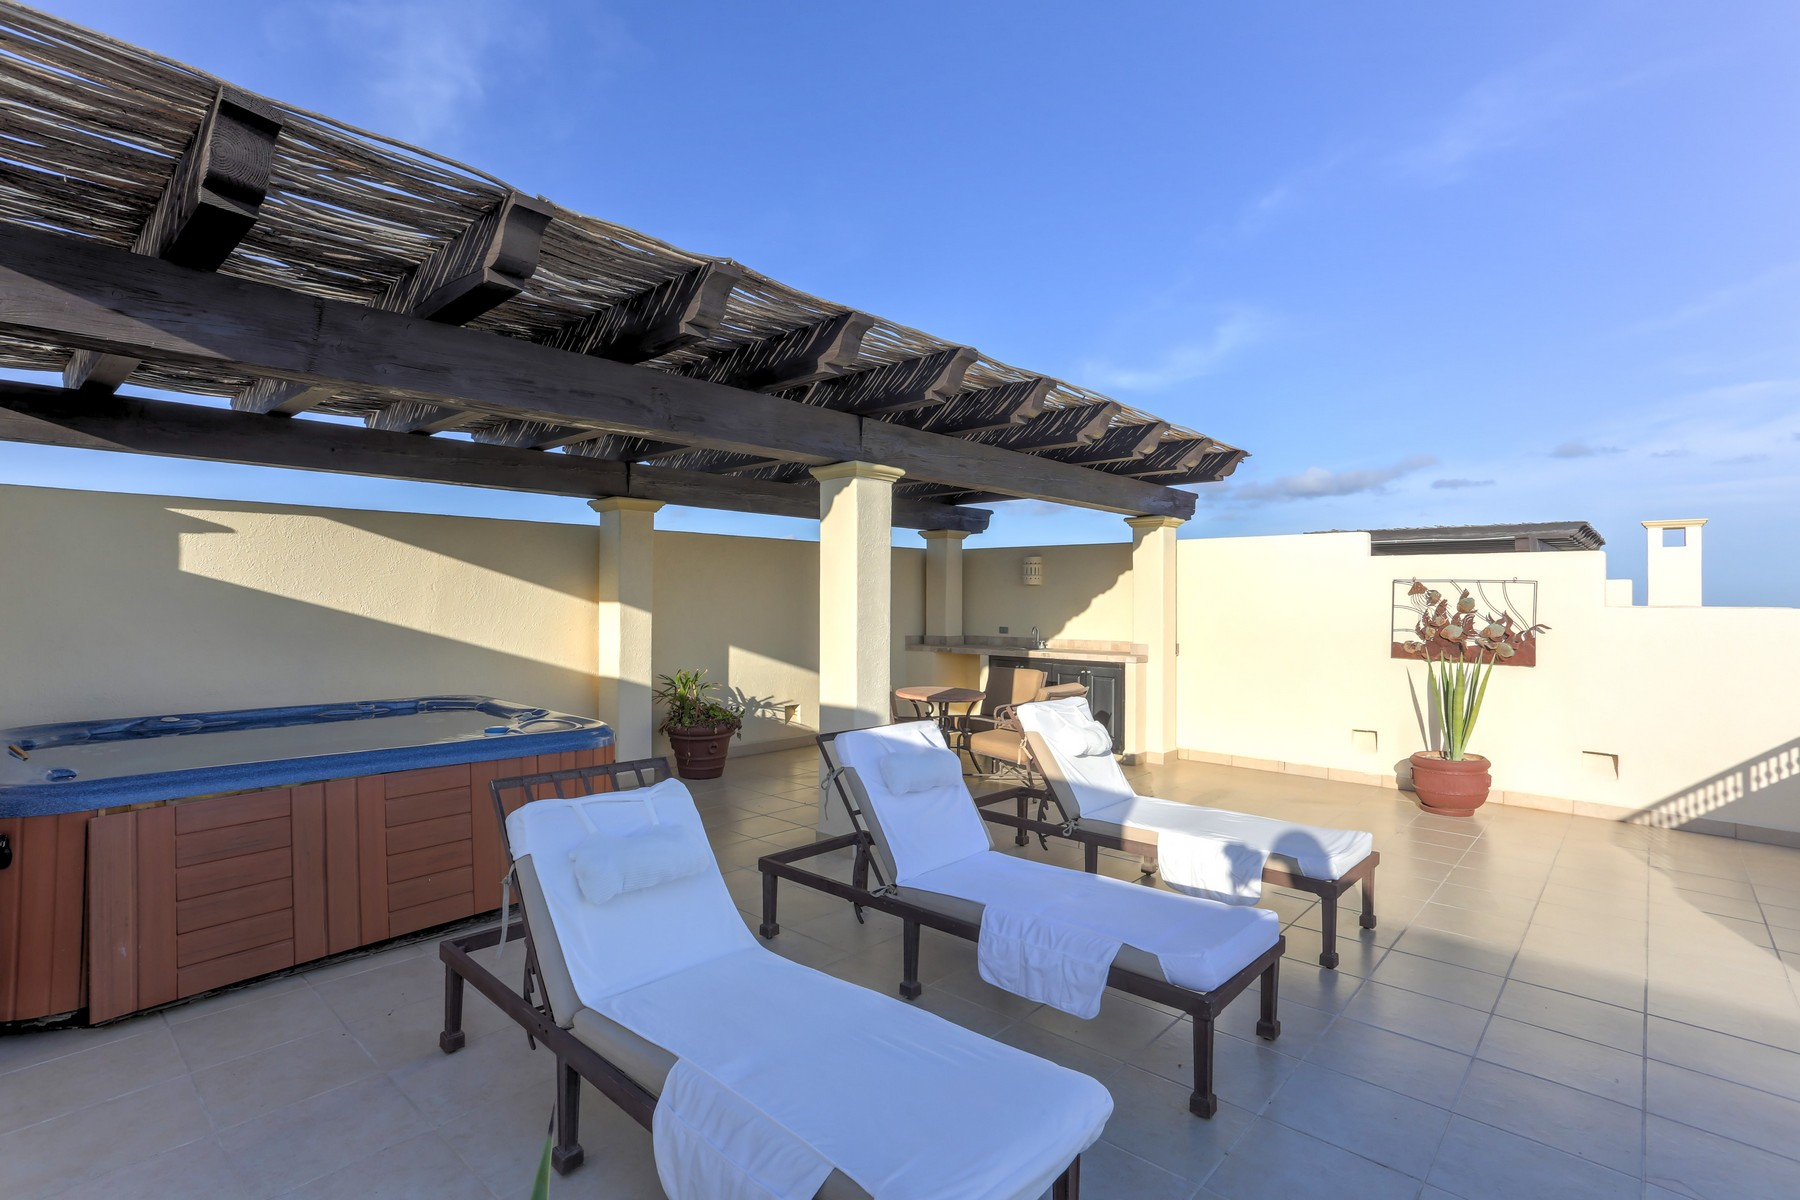 Additional photo for property listing at Penthouse 3602 Blvd Paseo San José Zona Hotelera Penthouse 3602 San Jose Del Cabo, Baja California Sur 23400 México